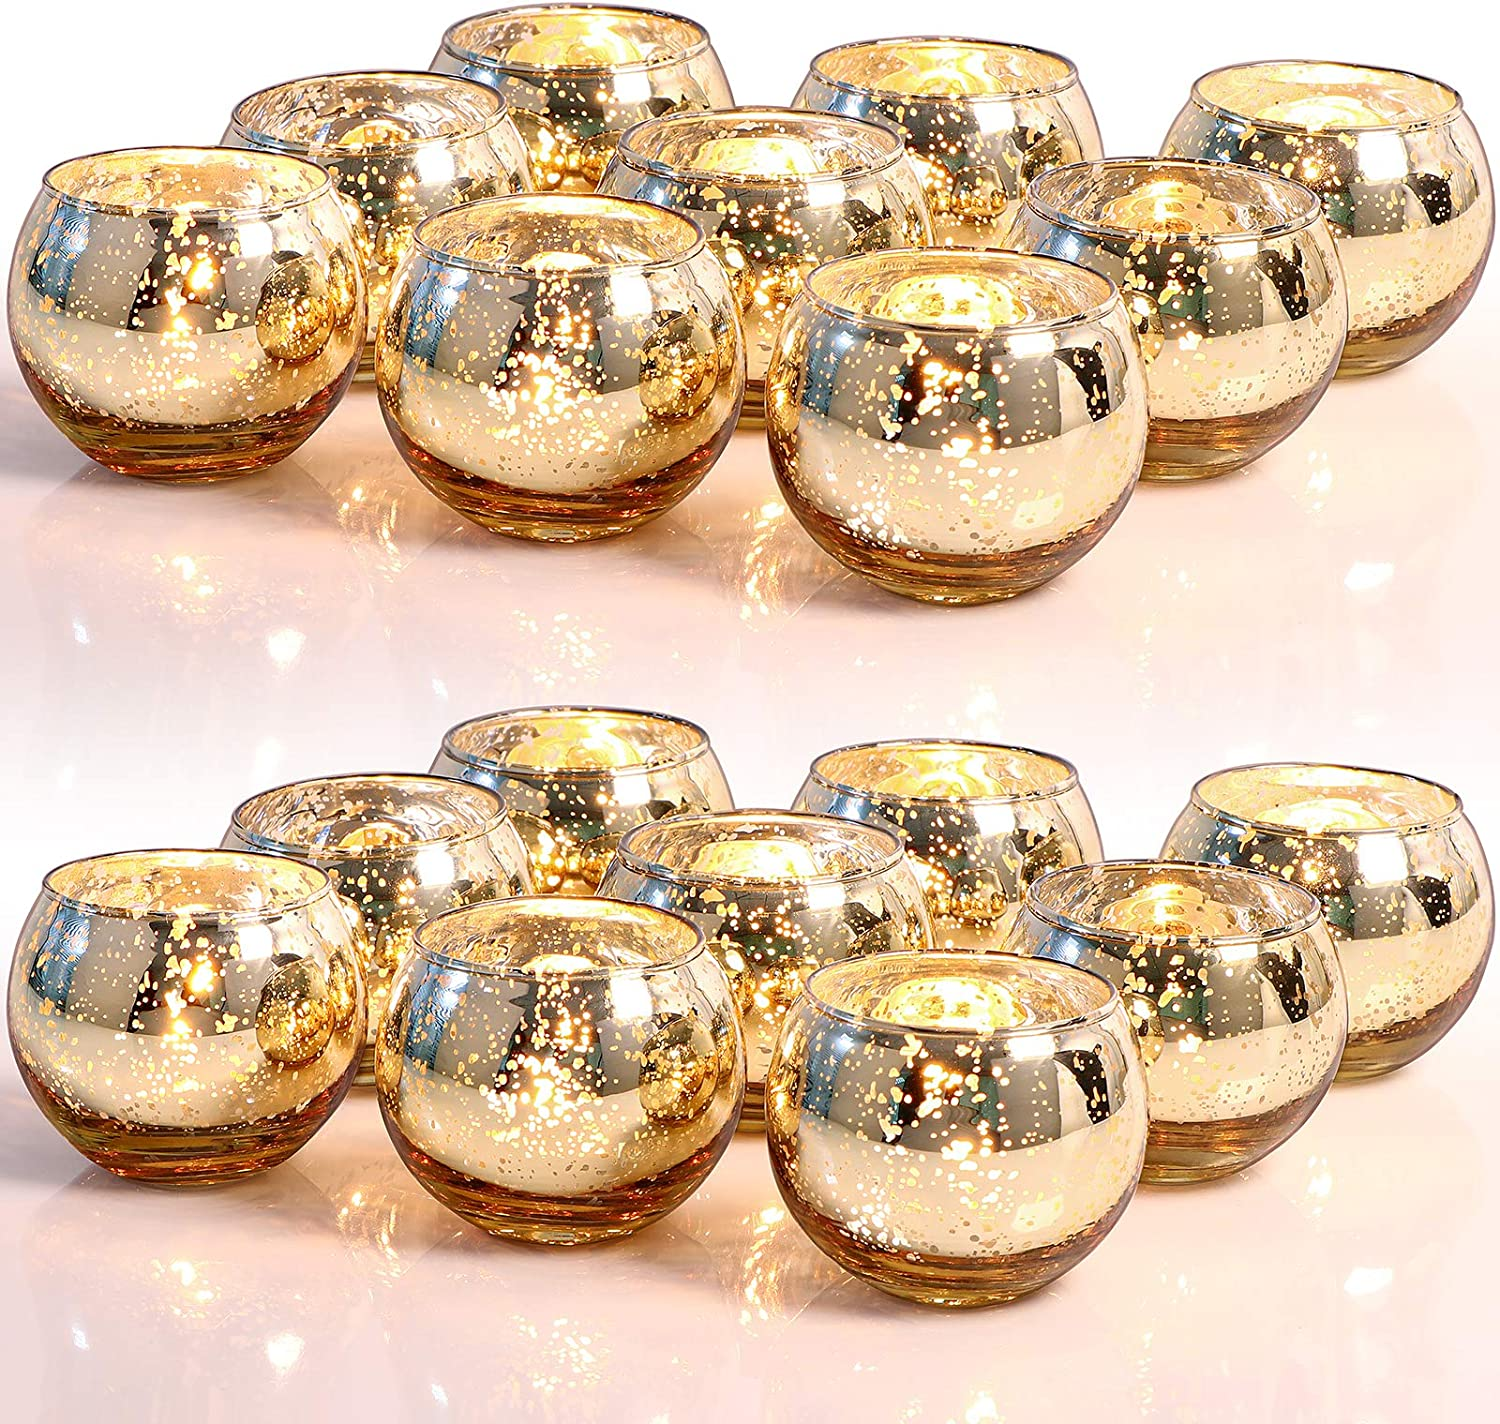 LETINE 36pcs Gold New life Votive Candle Tampa Mall Holders - Tealig Round table for